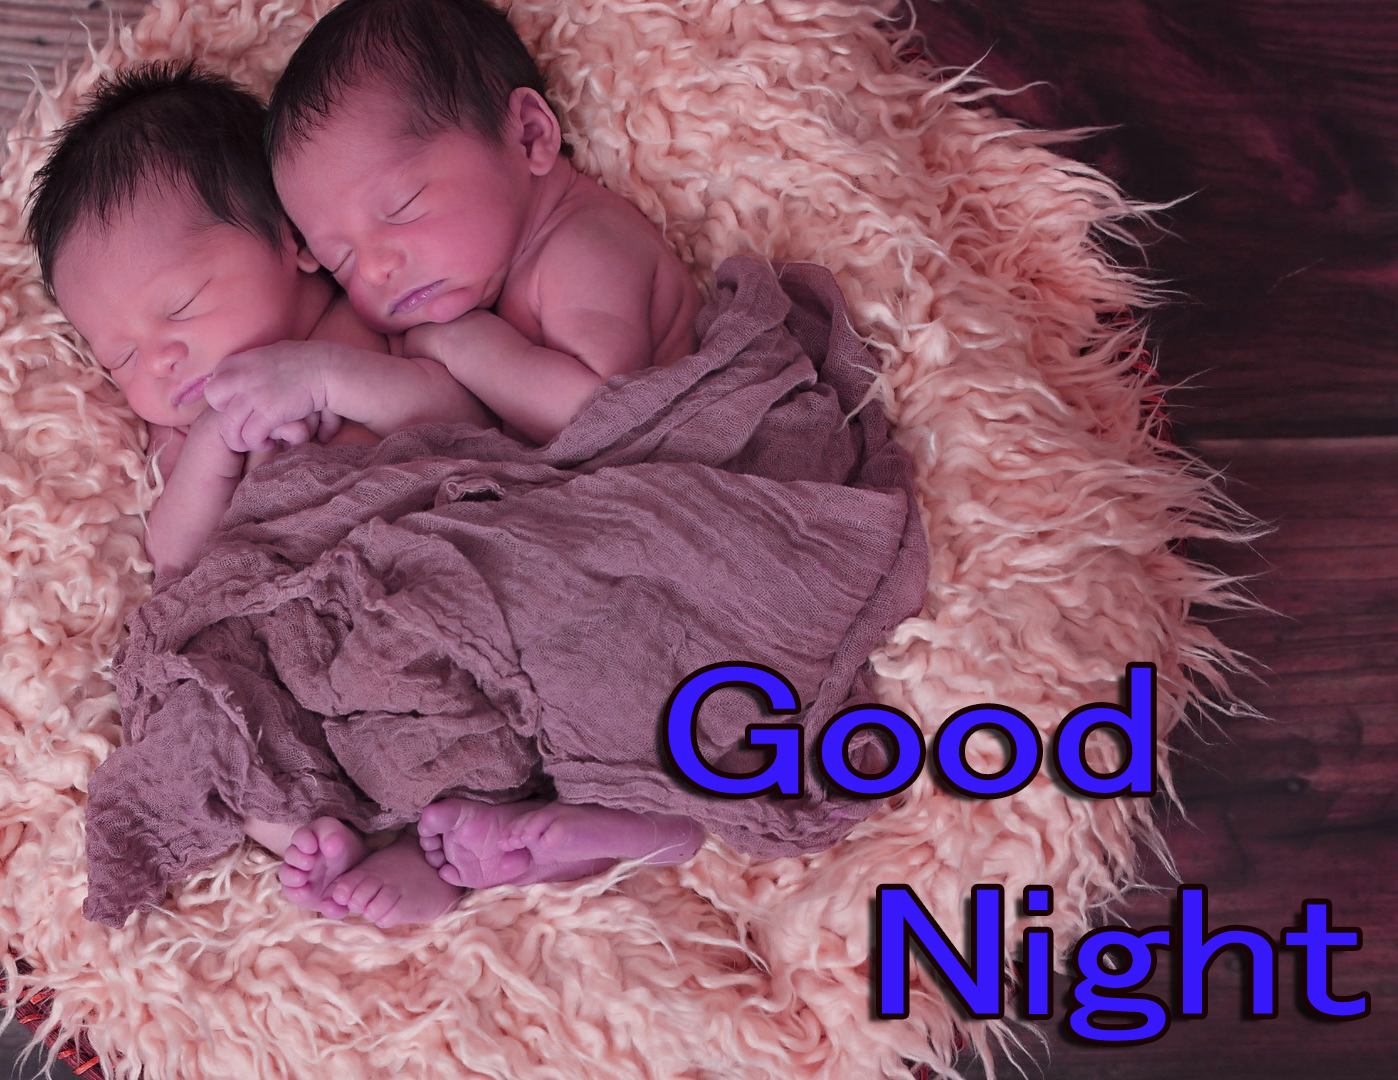 GOOD NIGHT IMAGES WITH CUTE BABY BOYS & GIRLS WALLPAPER FOR WHATSAPP